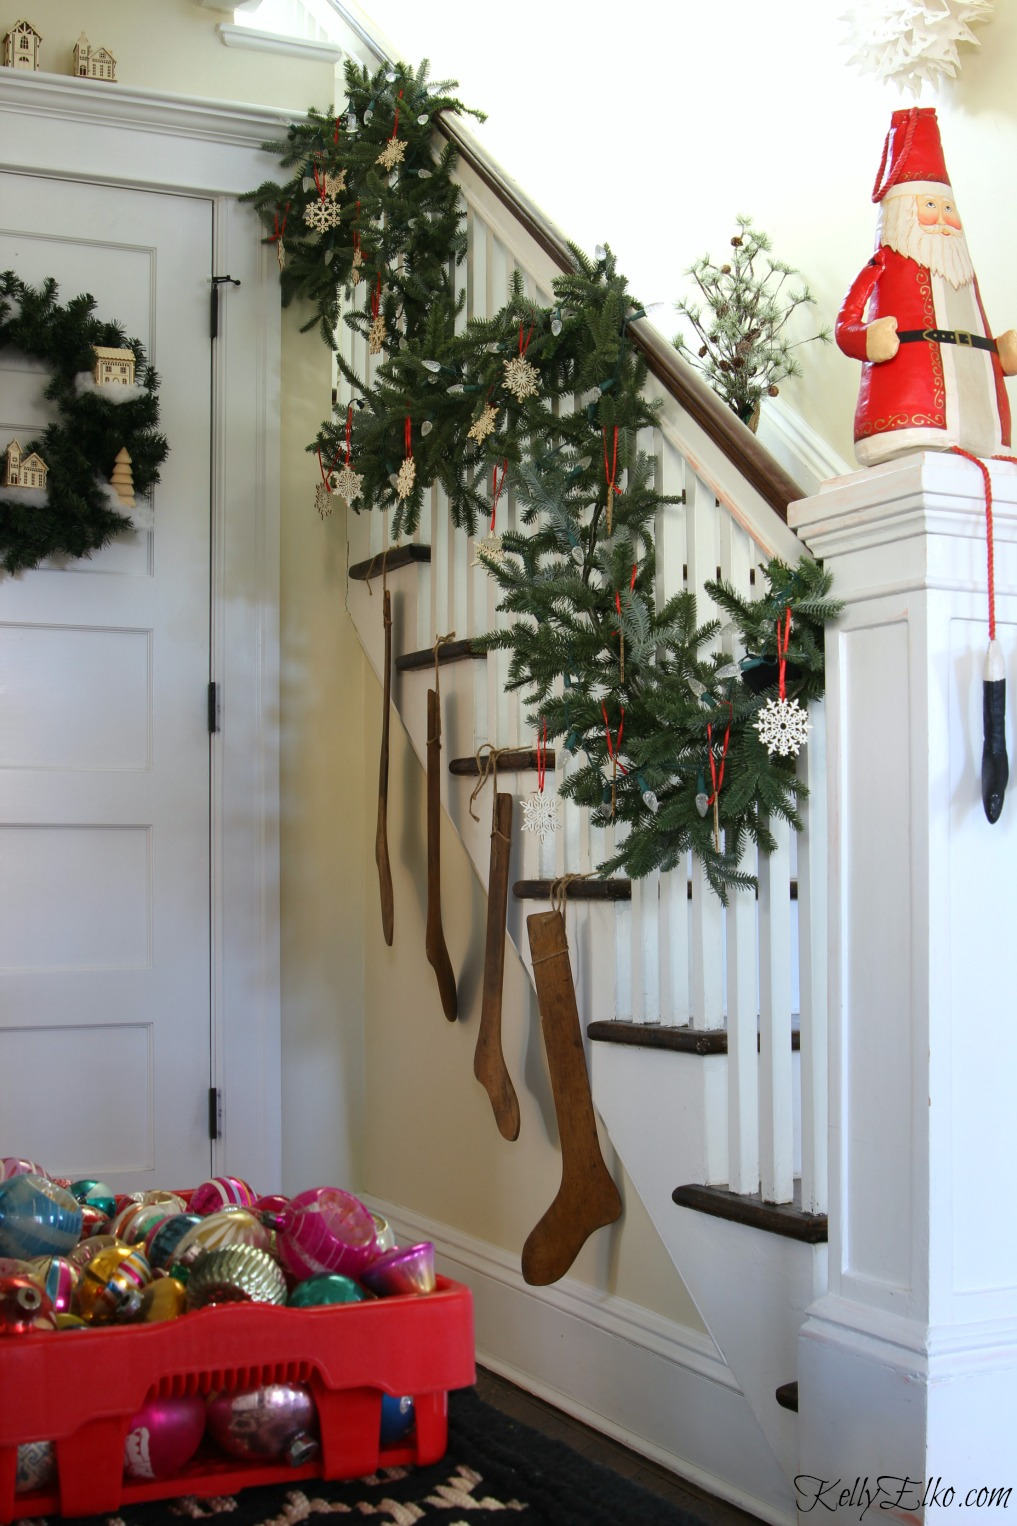 Creative Christmas Decorating Ideas - love this banister with garland and antique stocking stretchers kellyelko.com